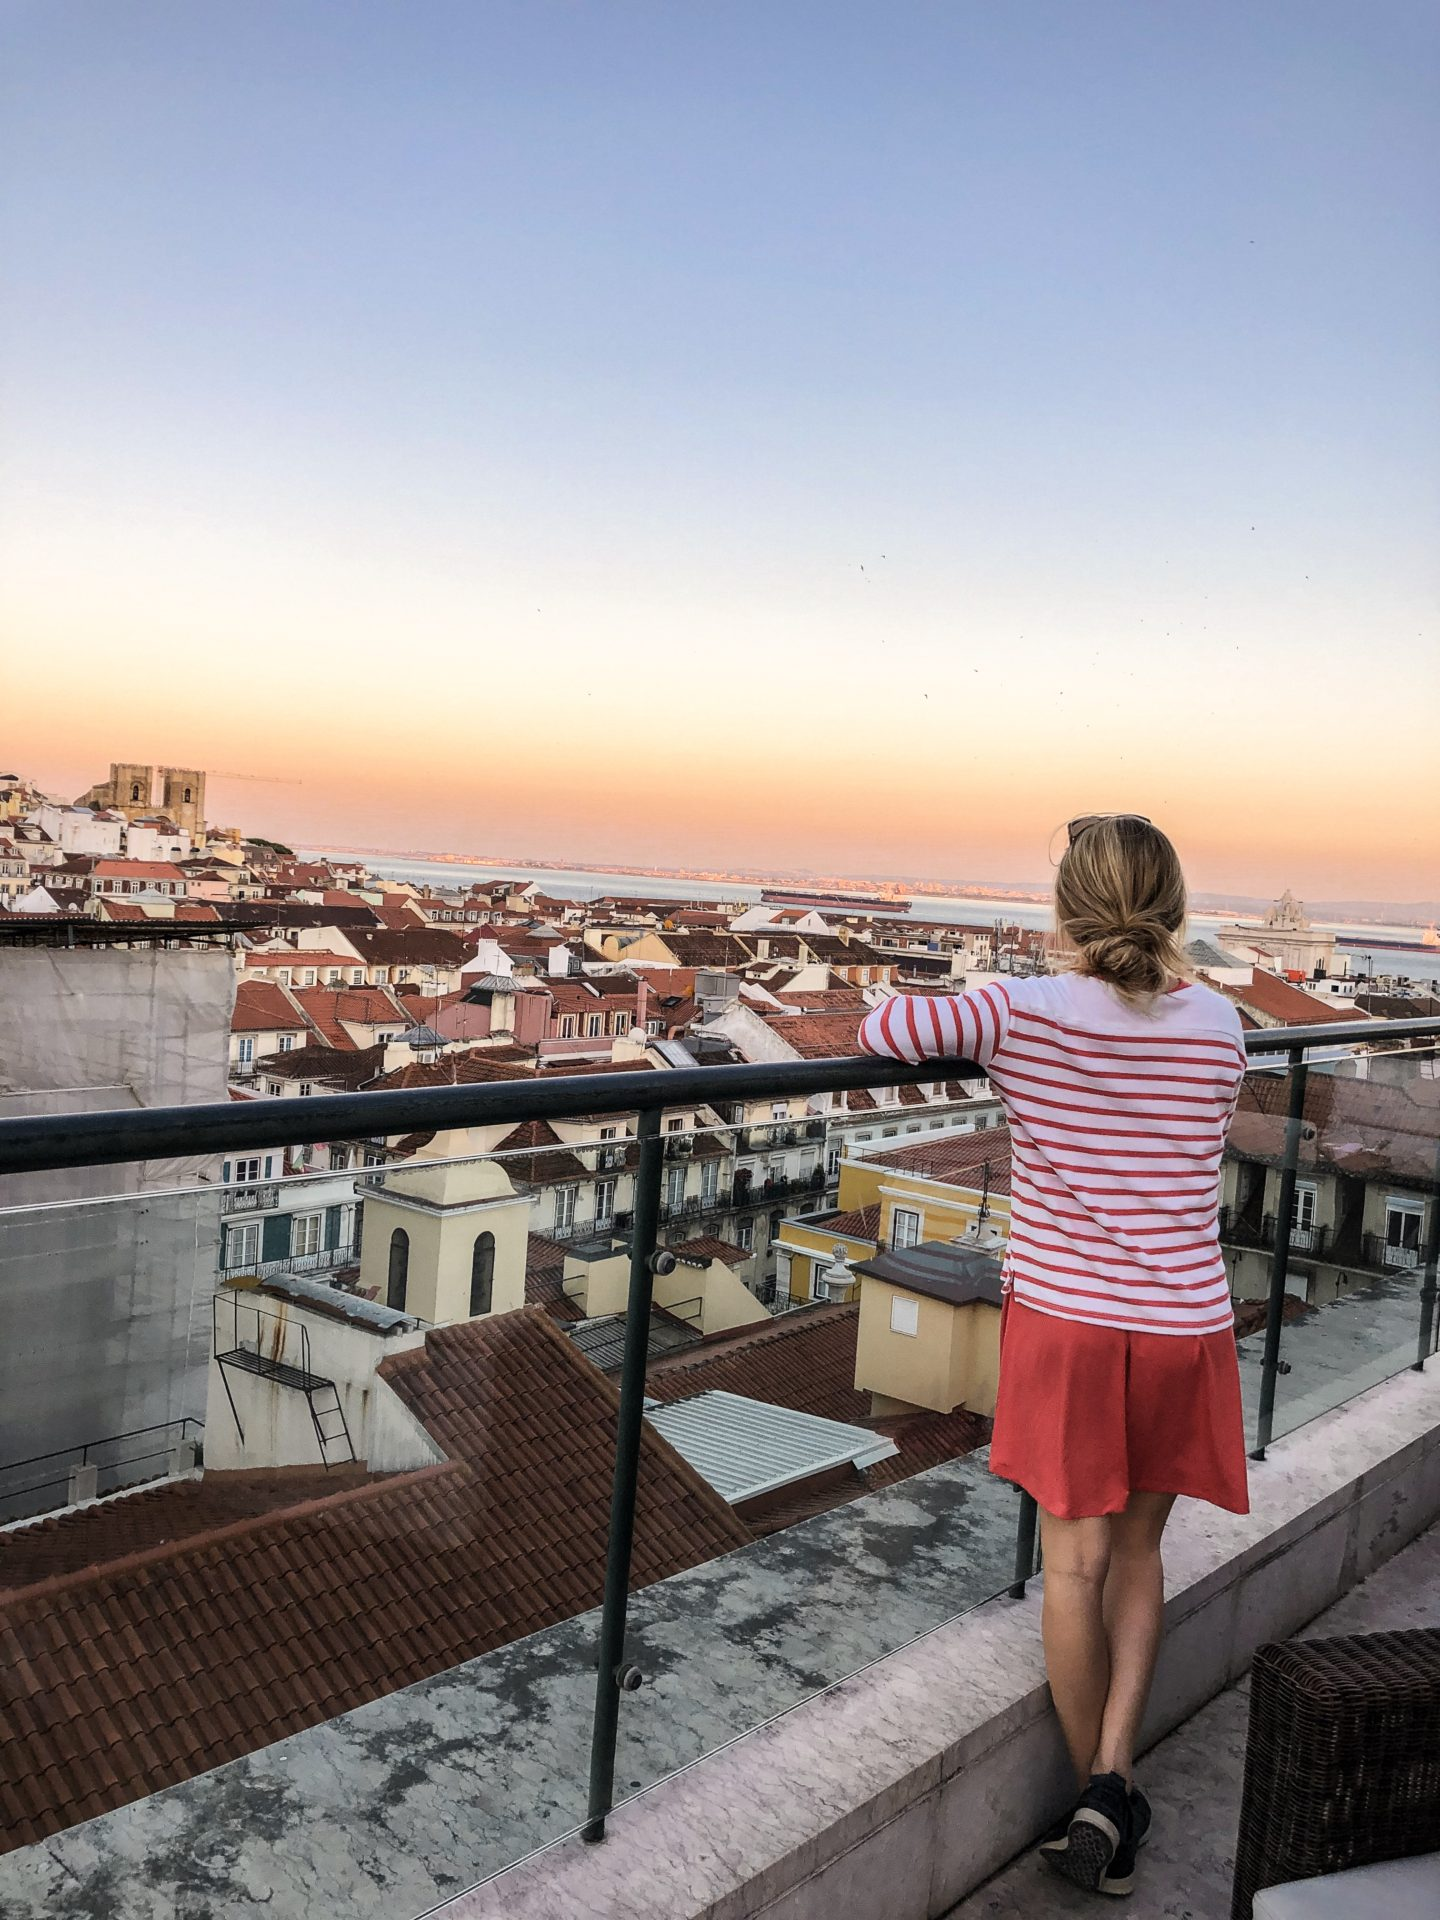 Rooftop views overlooking the sunset on our first evening in Lisbon Portugal after a crazy travel day